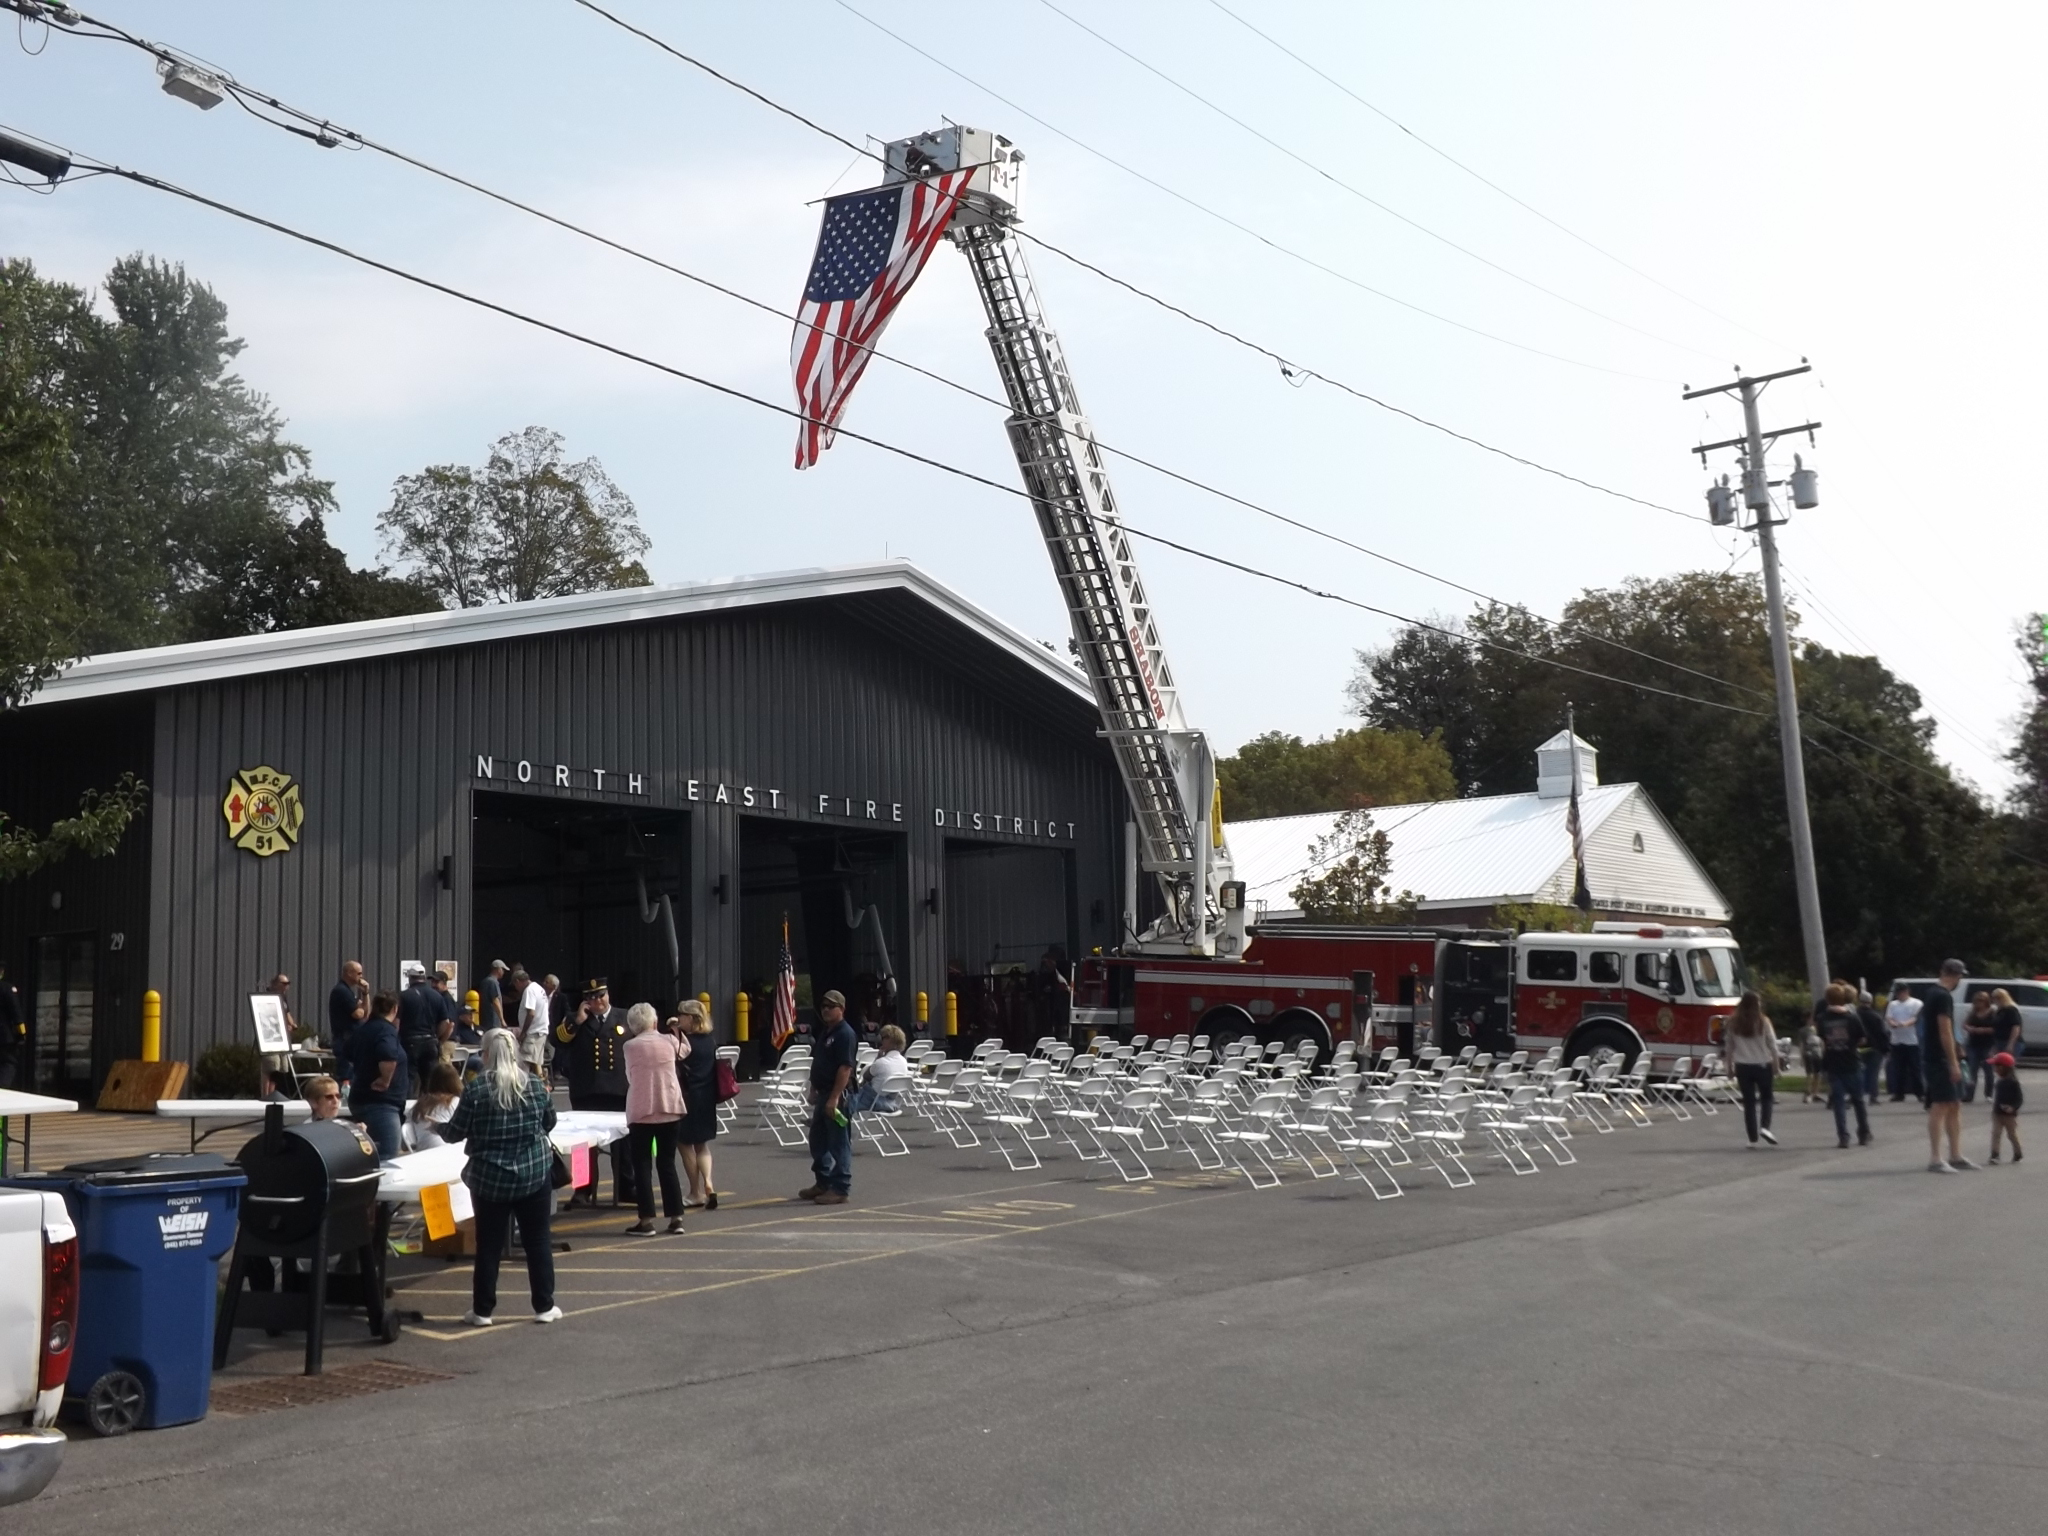 <strong>From the end of a firetruck's ladder, an American flag was hung and could be seen swaying above the Annex where the Open House was held Sunday afternoon, Sept. 12.<em>Photo by Kaitlin Lyle.</em></strong>